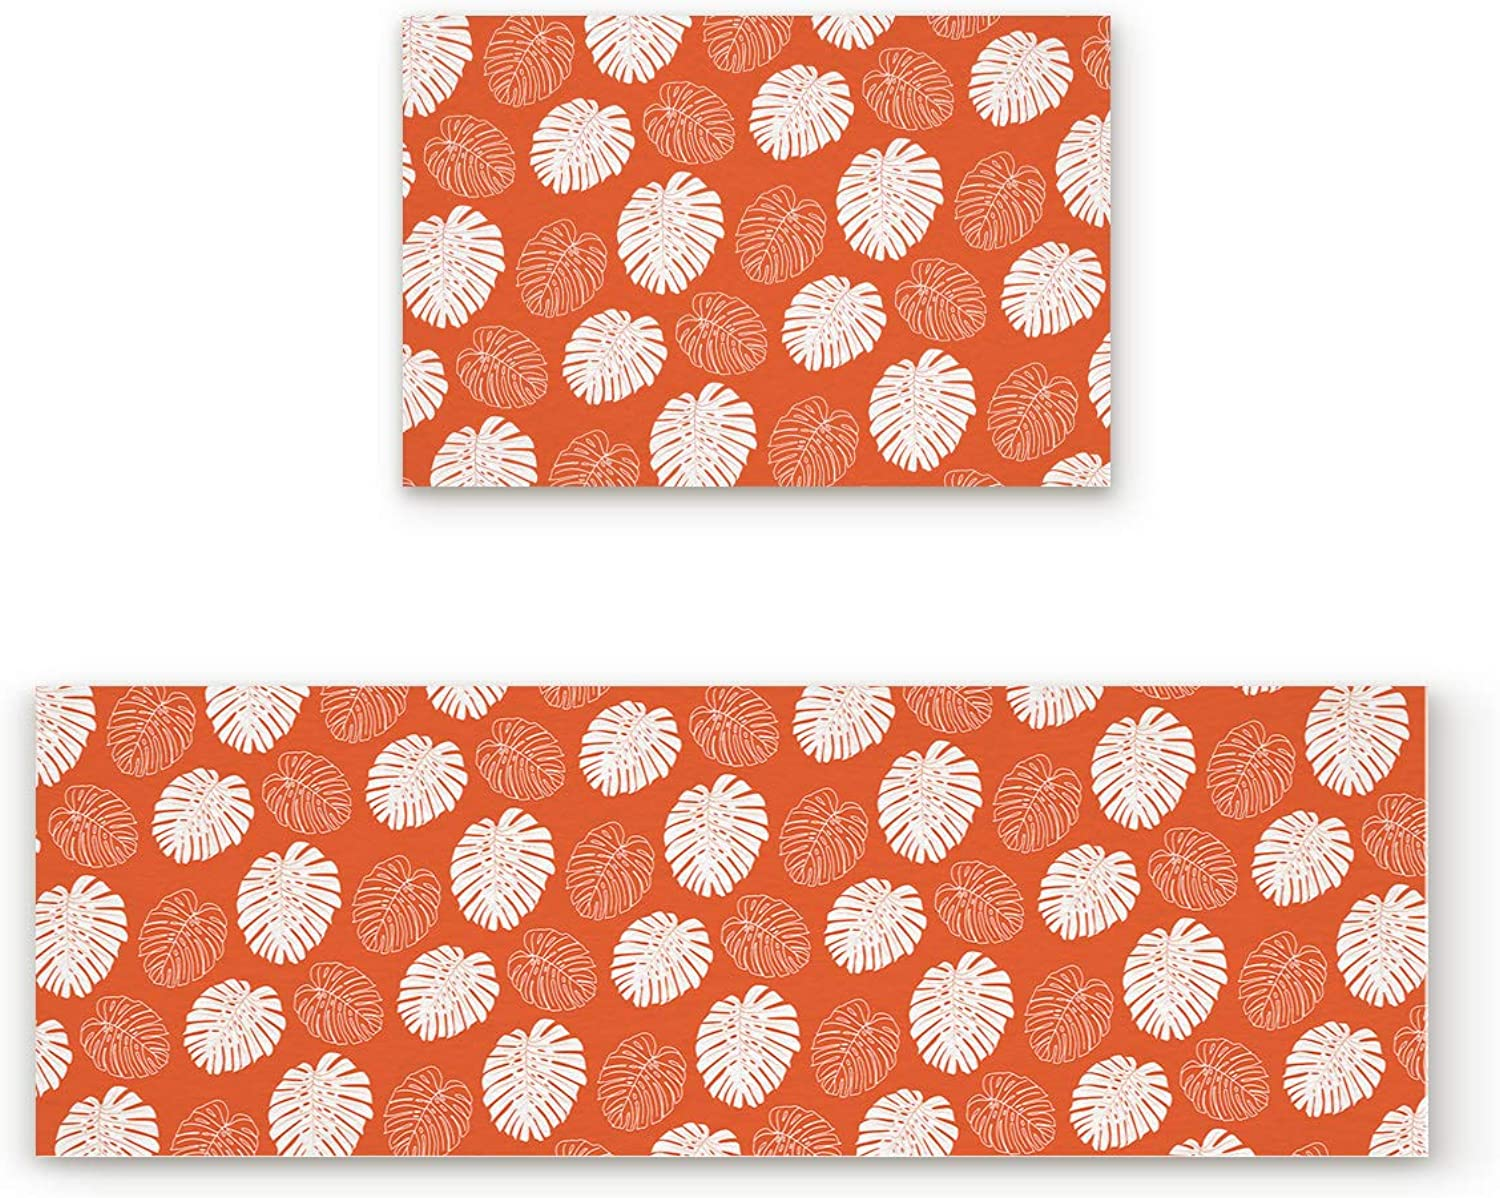 SODIKA 2 Pieces Kitchen Rug Set,Non-Skid Slip Washable Doormat Floor Runner Bathroom Area Rug Carpet,Tropical Plant Leaves orange White (19.7x31.5in+19.7x63 inches)